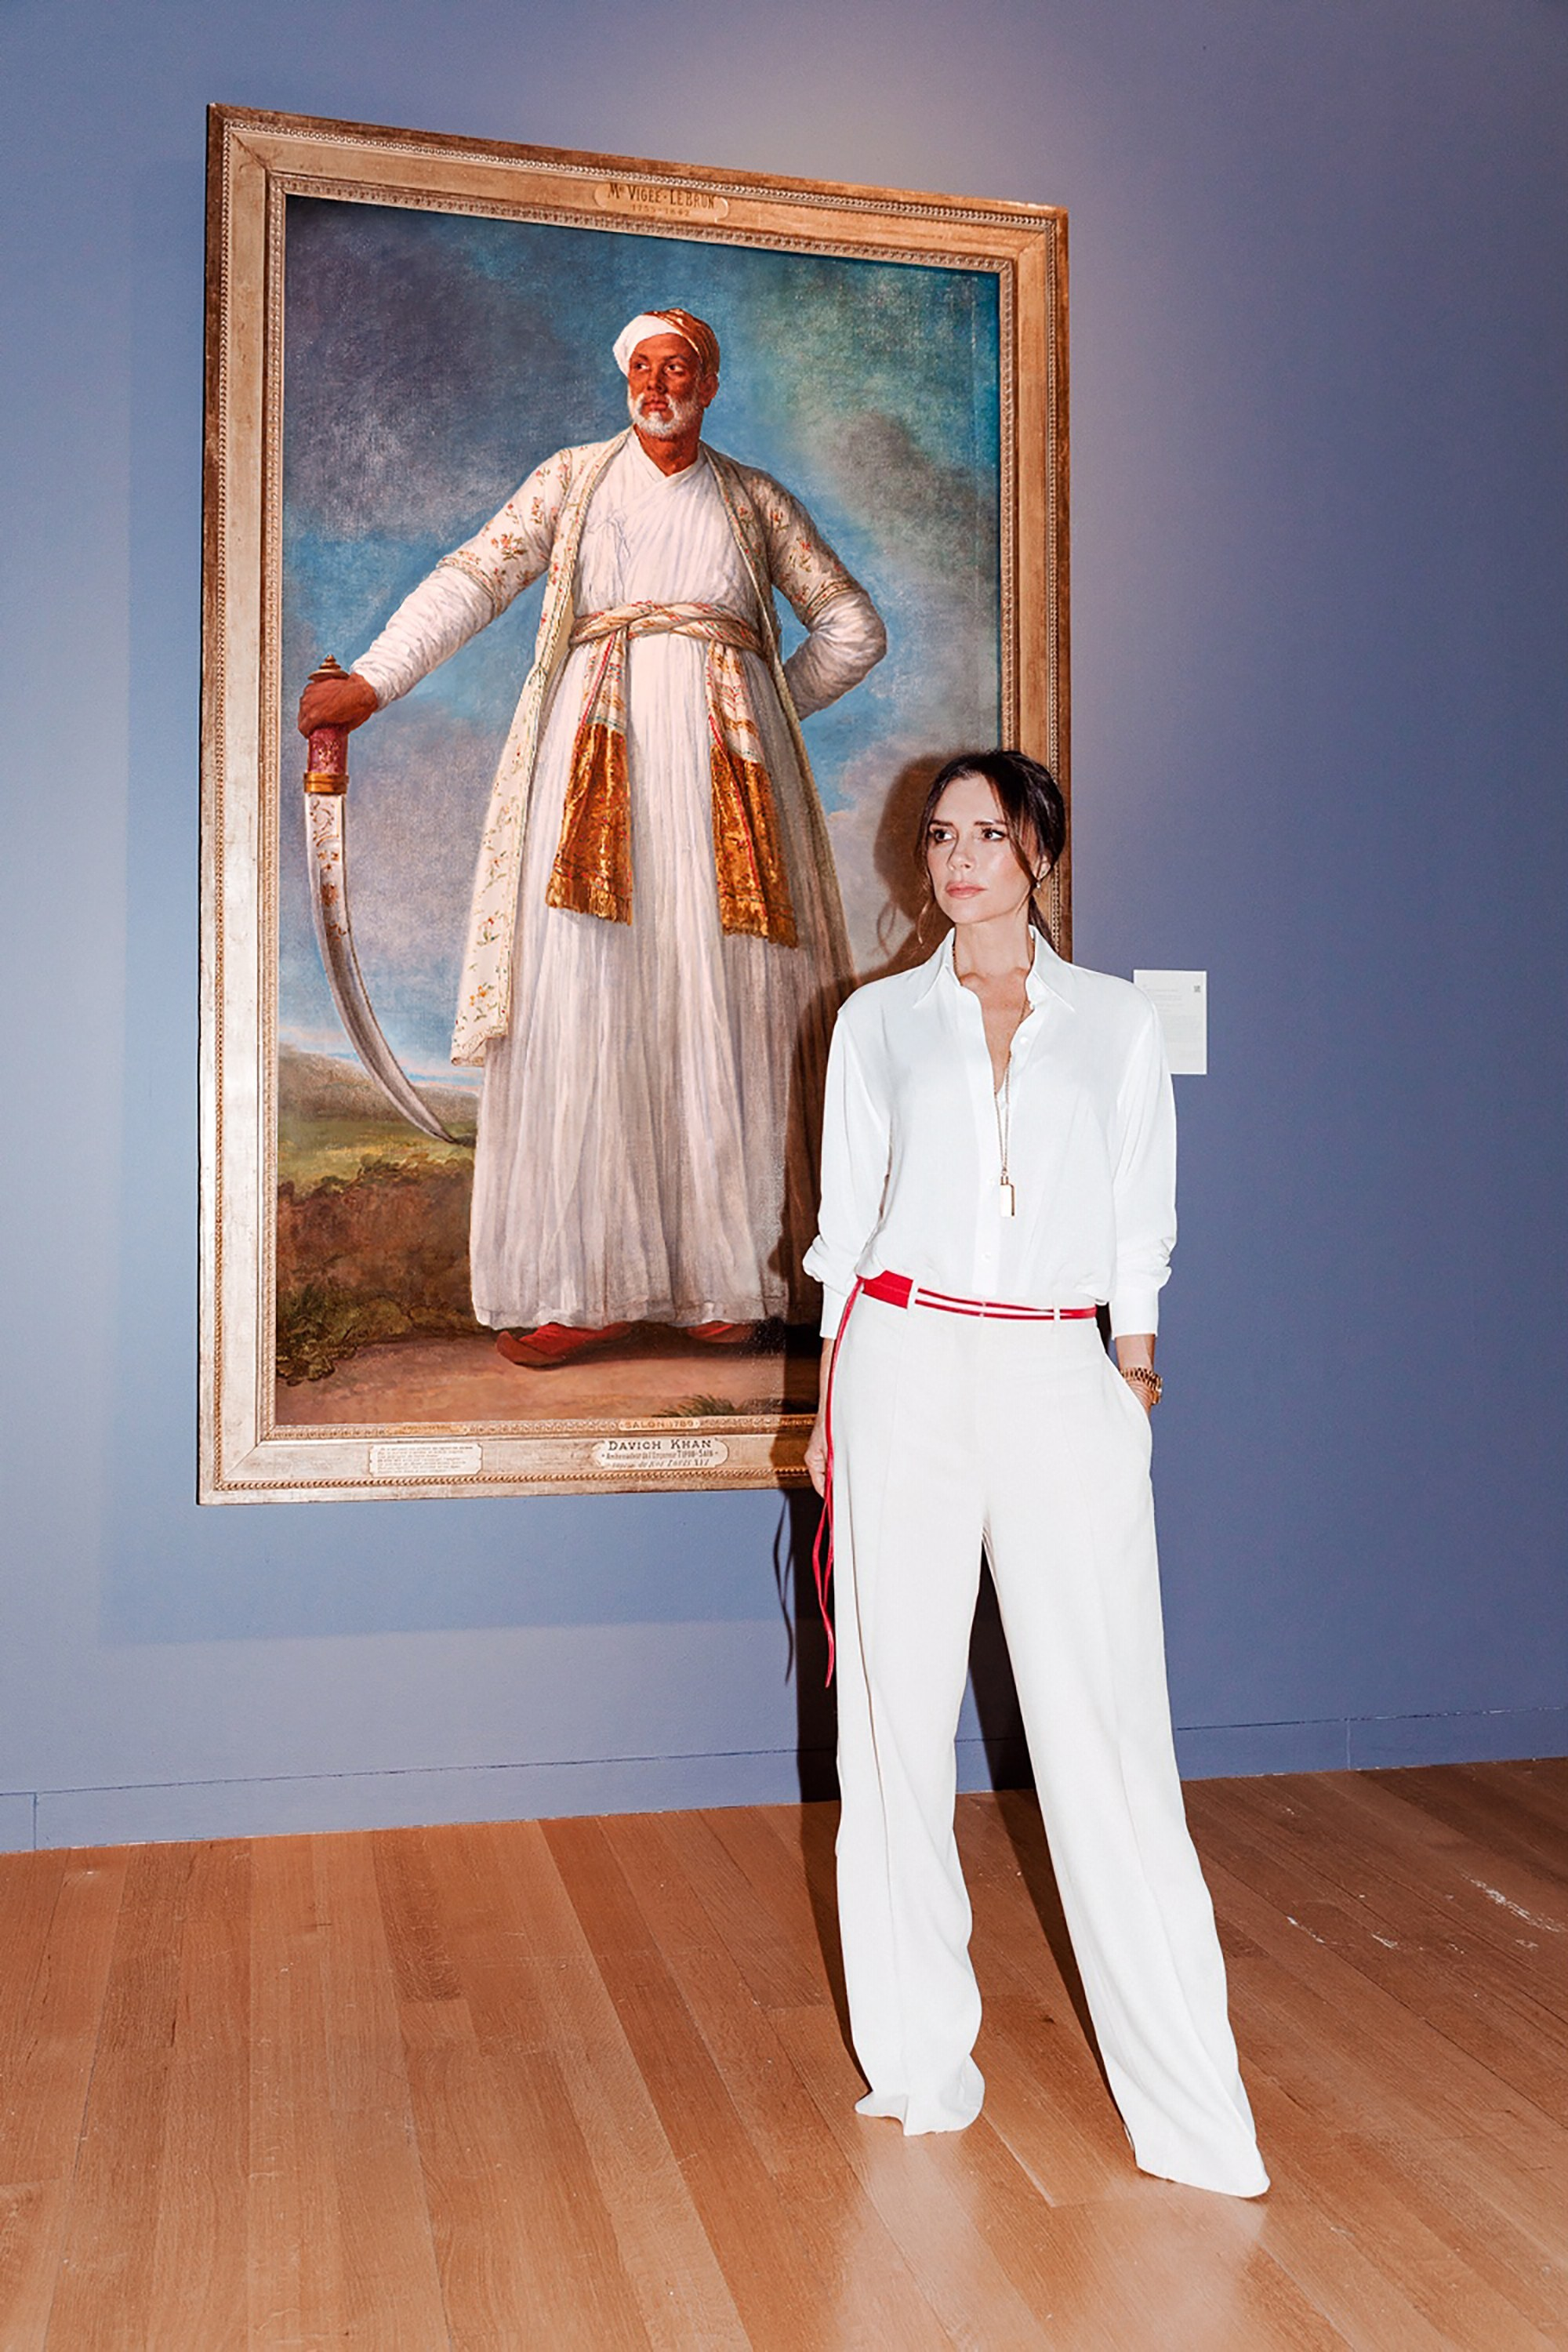 Victoria Beckham stands next to Vigée Le Brun's portrait of the Indian ambassador to celebrate the 'Female Triumphant', 21 works of female Old Masters exhibited at Sotheby's in January. Photo: Tom Newton, Vogue